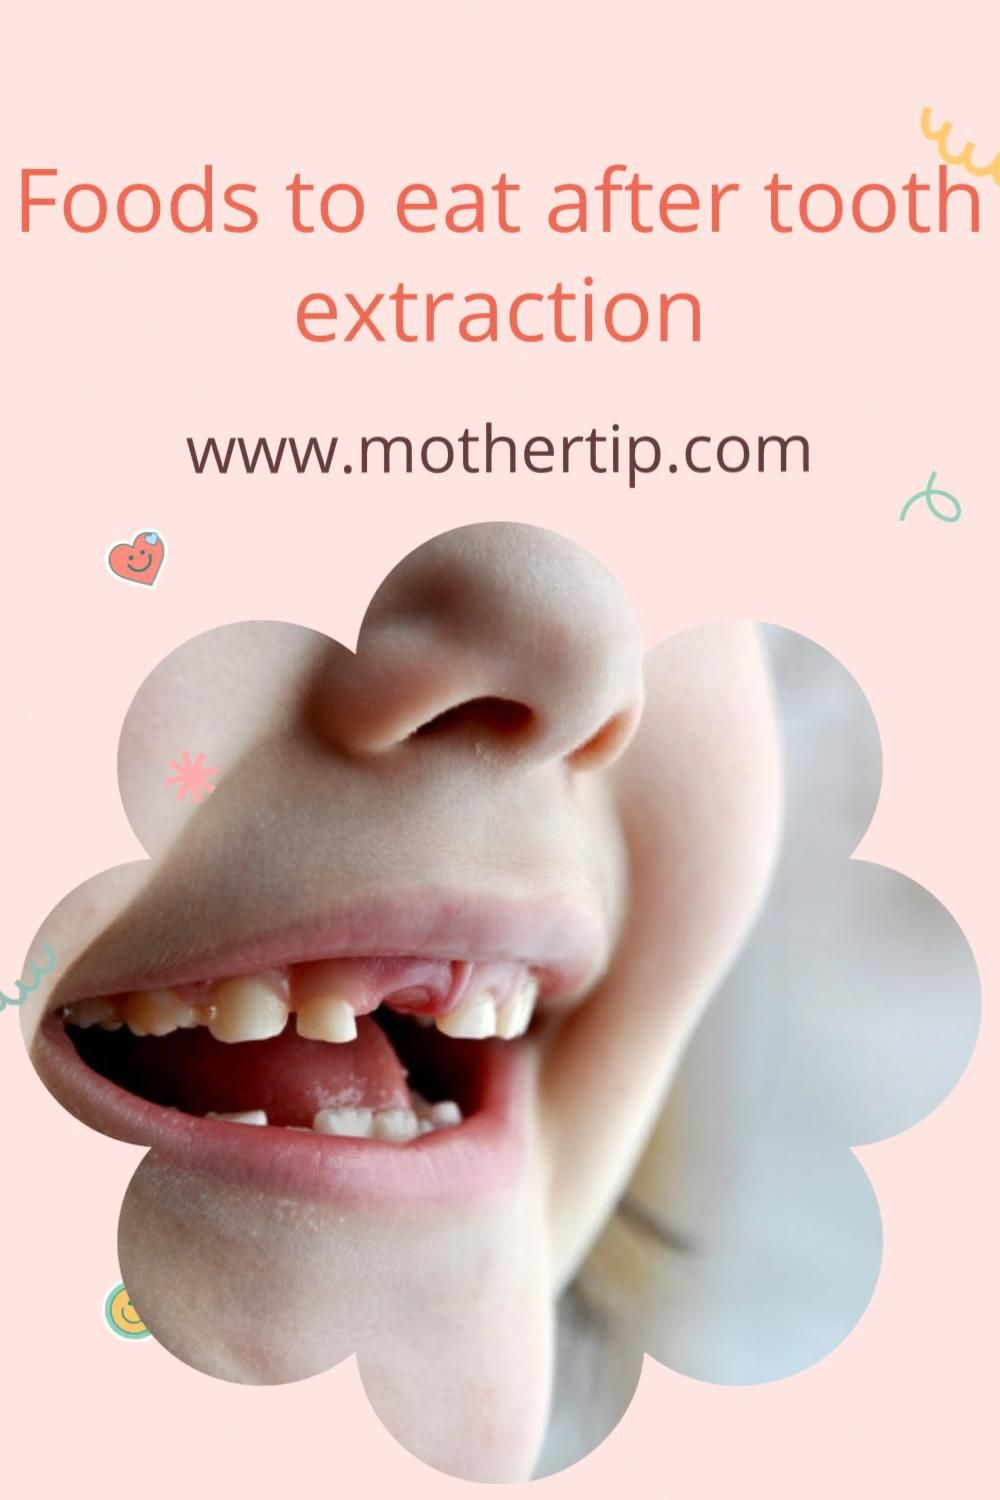 99 Soft Food Diet Recipes Eat After Tooth Extraction Braces Dentures Eating After Tooth Extraction Soft Foods Diet Food After Tooth Extraction